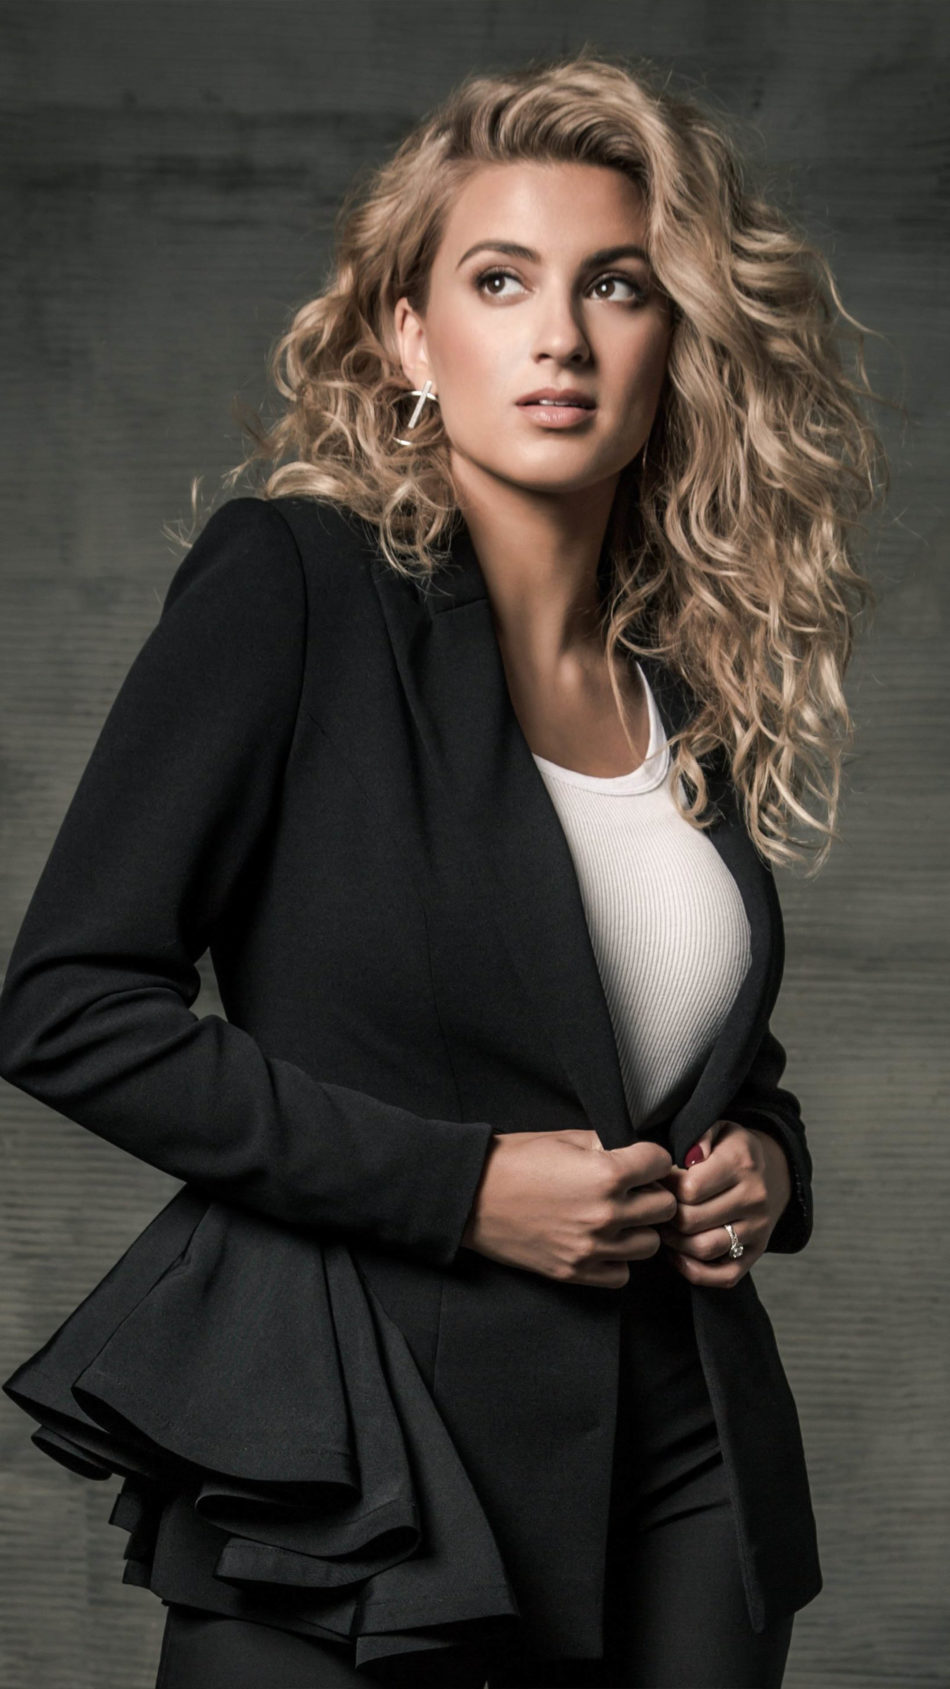 Singer Tori Kelly 4K Ultra HD Mobile Wallpaper